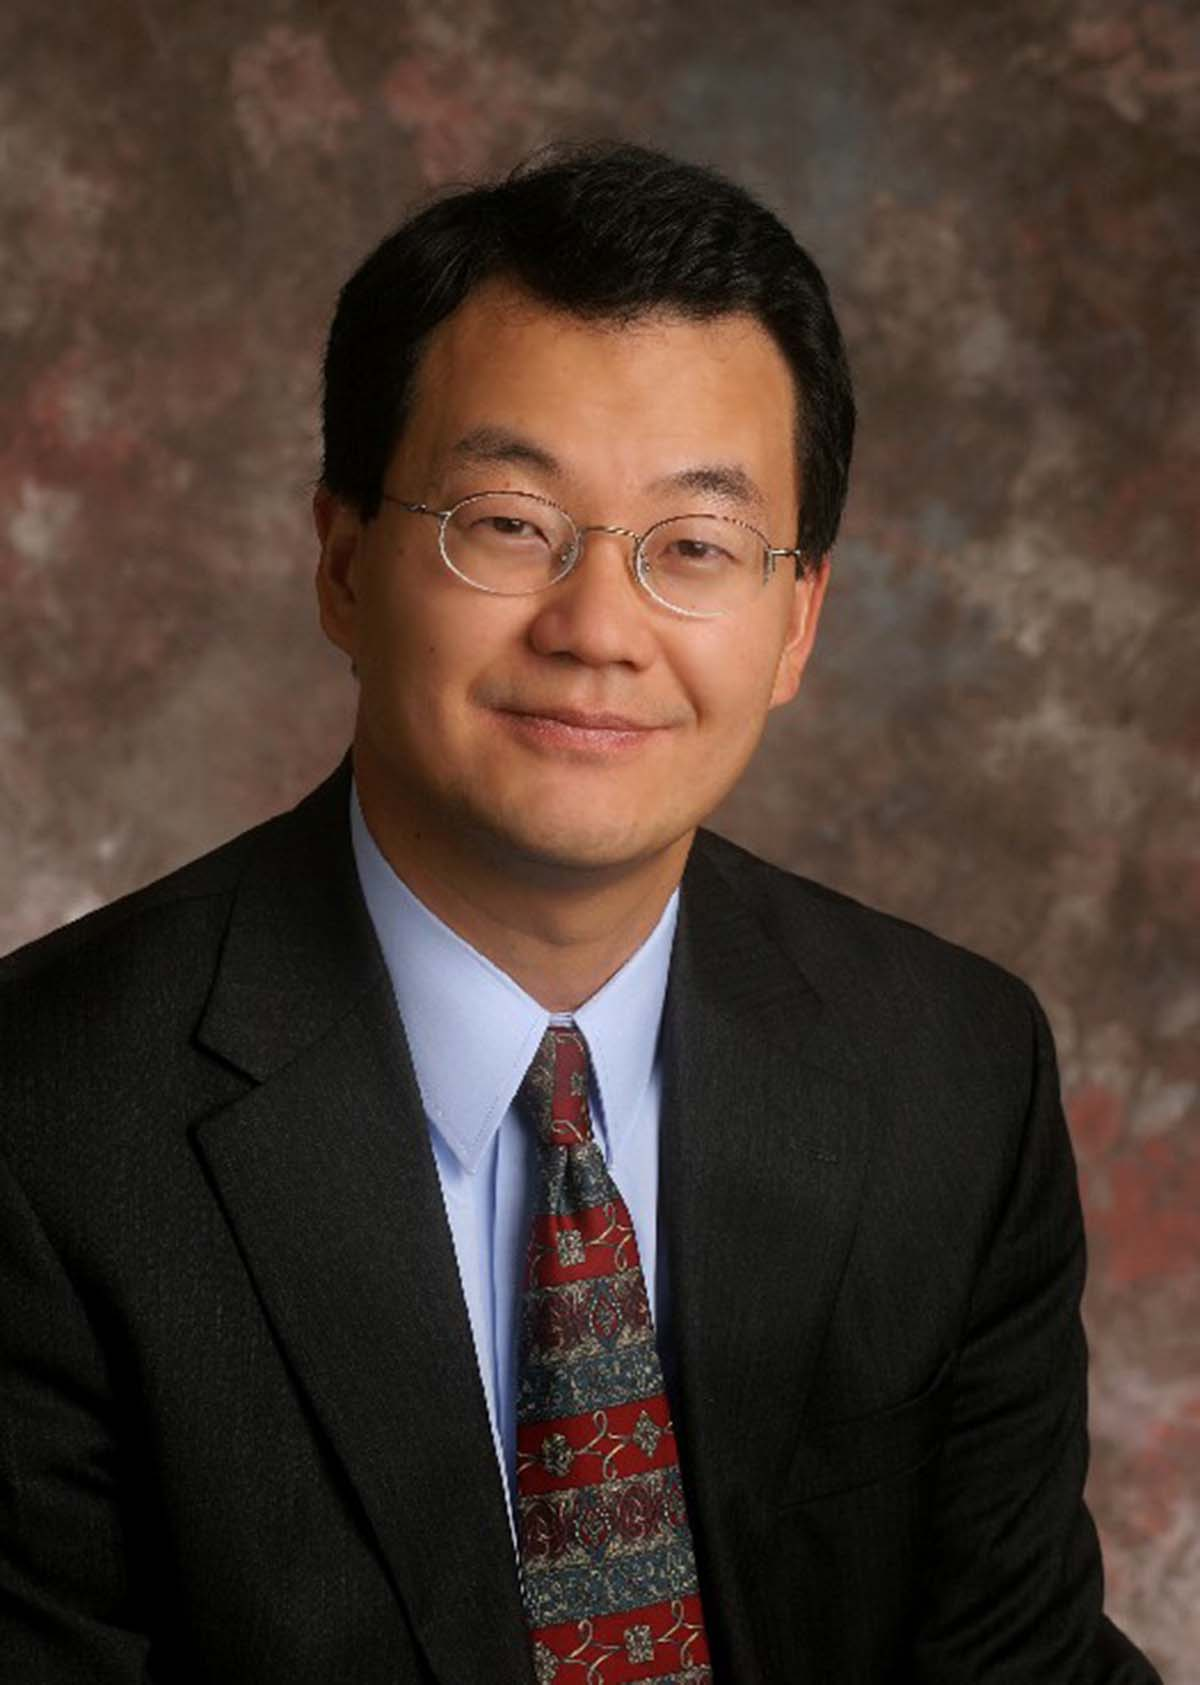 Lawrence Yun, the chief economist of the National Association of Realtors.